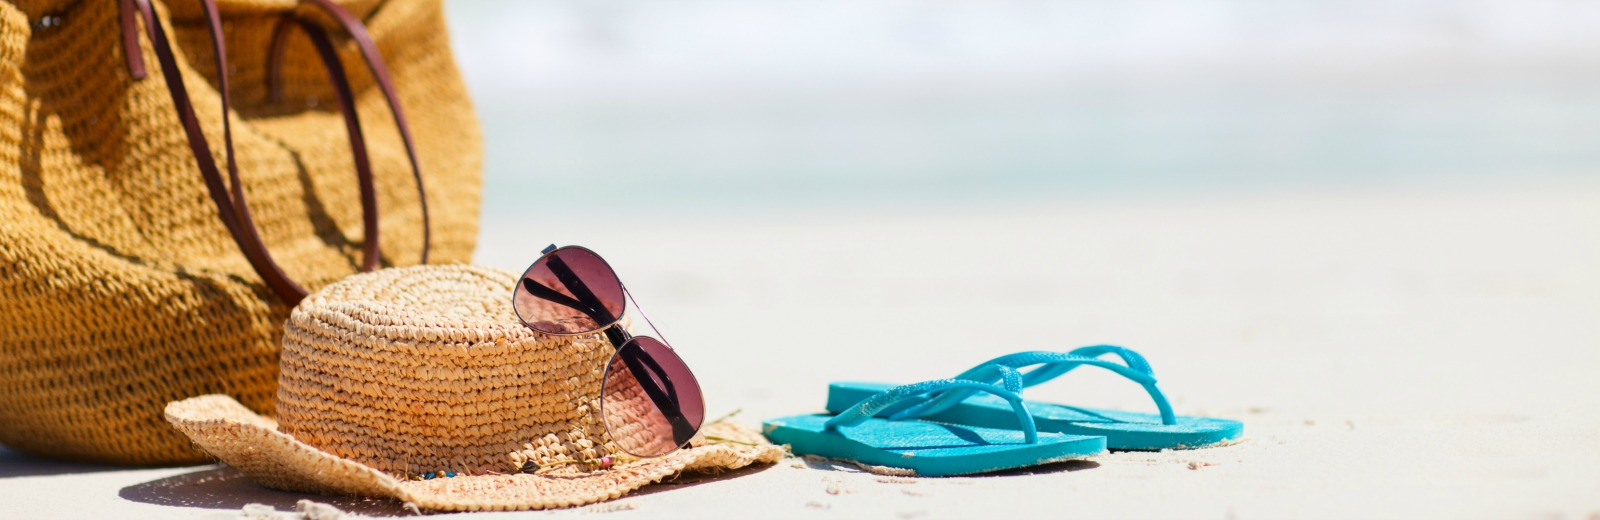 How to Protect Your Hearing Aid at the Beach